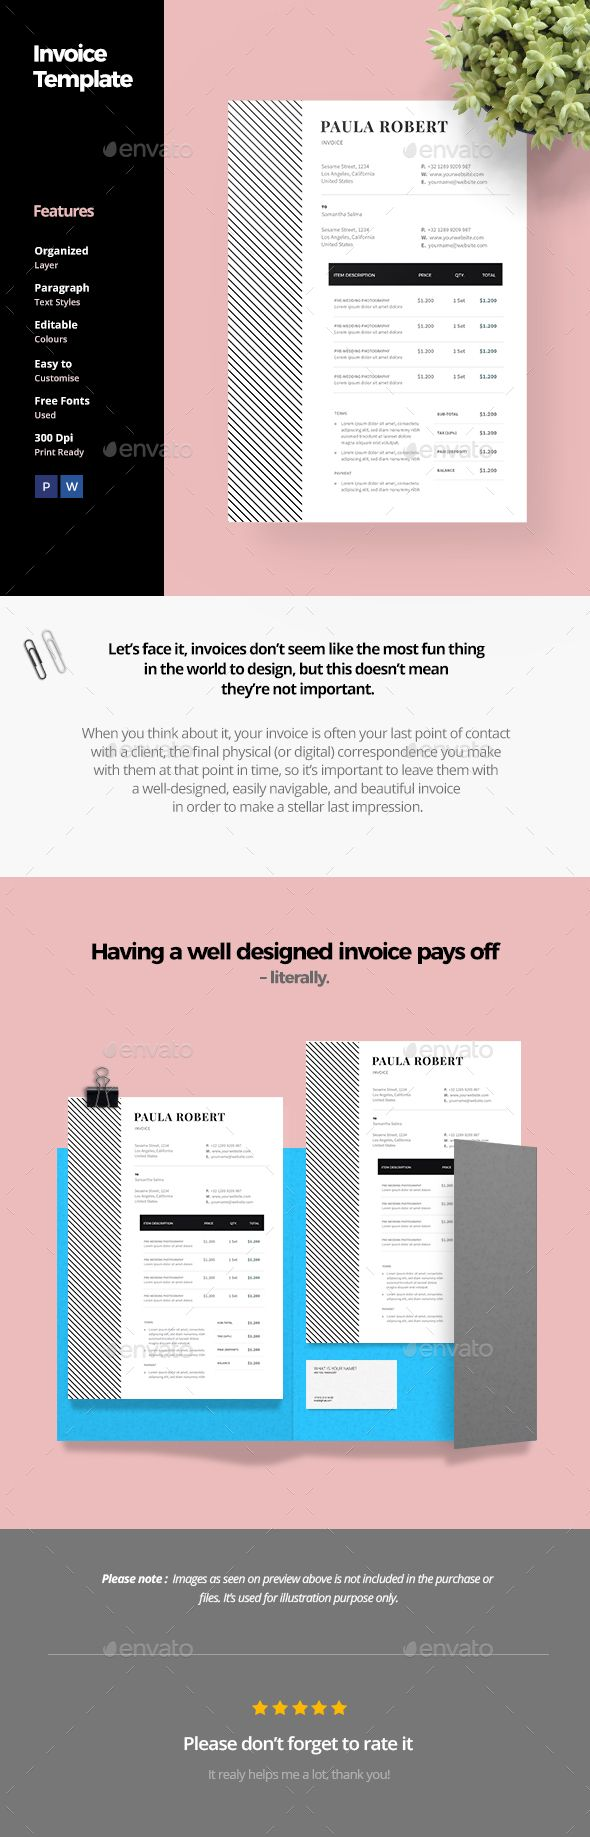 Time Tracking Invoicing Word  Best Invoice Template Images On Pinterest Free Printable Blank Invoices Excel with Winners Return Policy No Receipt Invoice Template By Anabellahope Clean Invoice Template Clean And Modern Invoice  Template For Your Business Invoice Format In Excel Sheet Excel